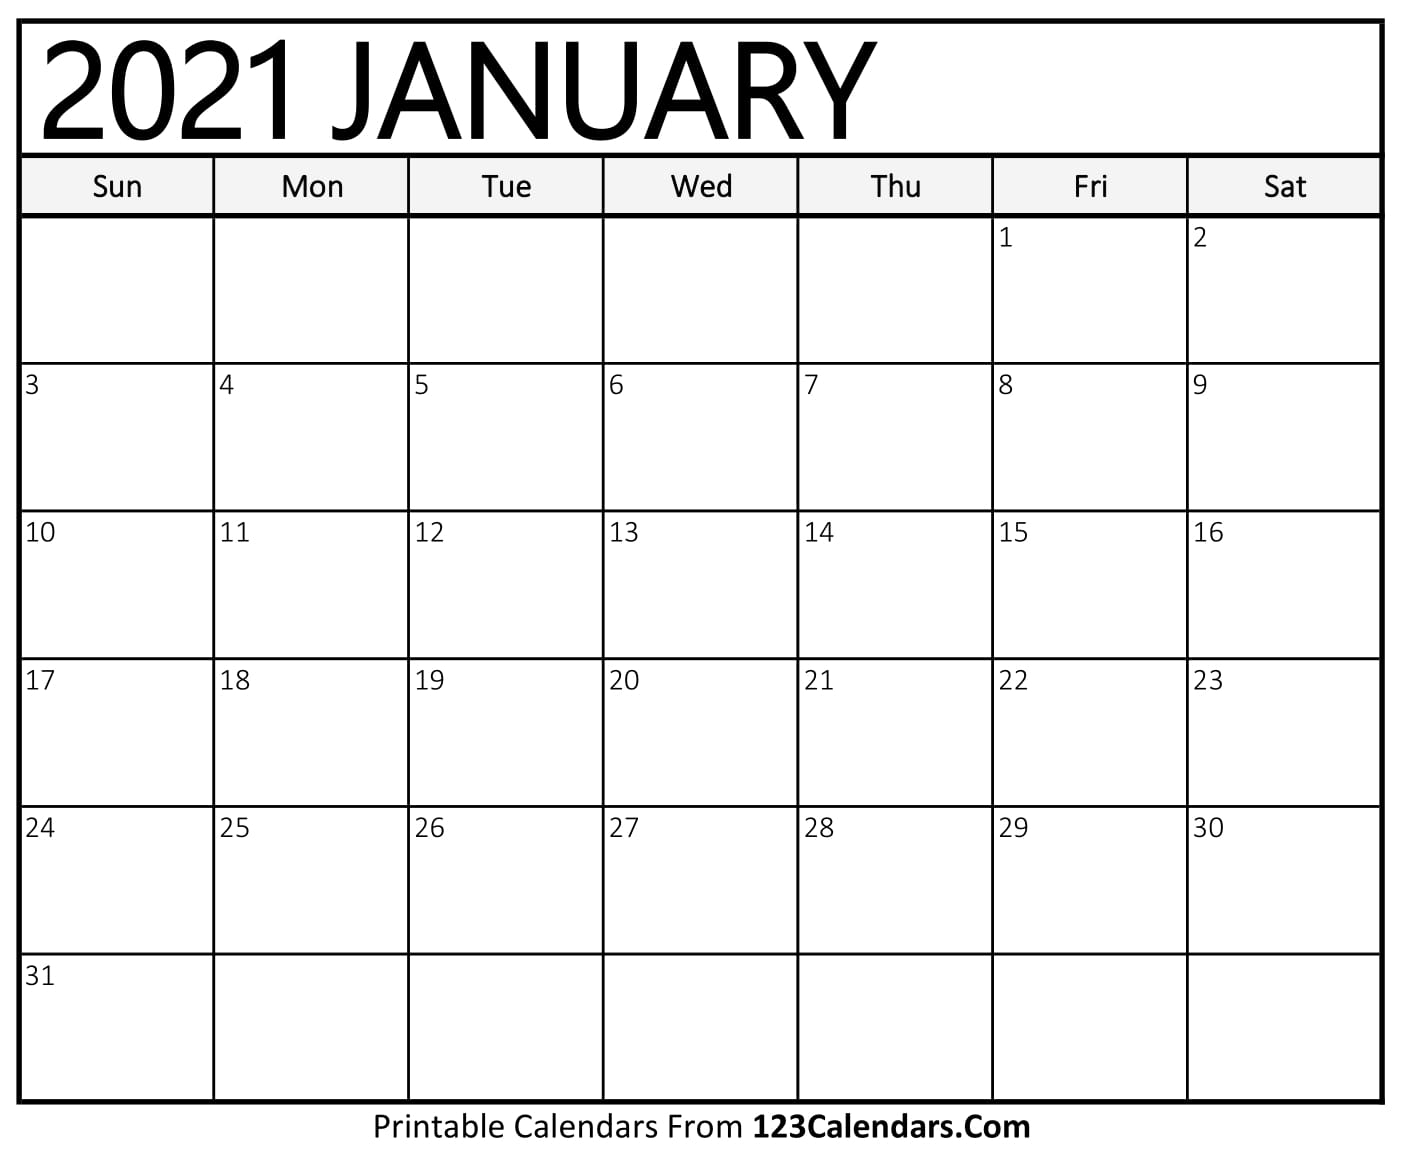 2021 Printable Calenders With Big Squares